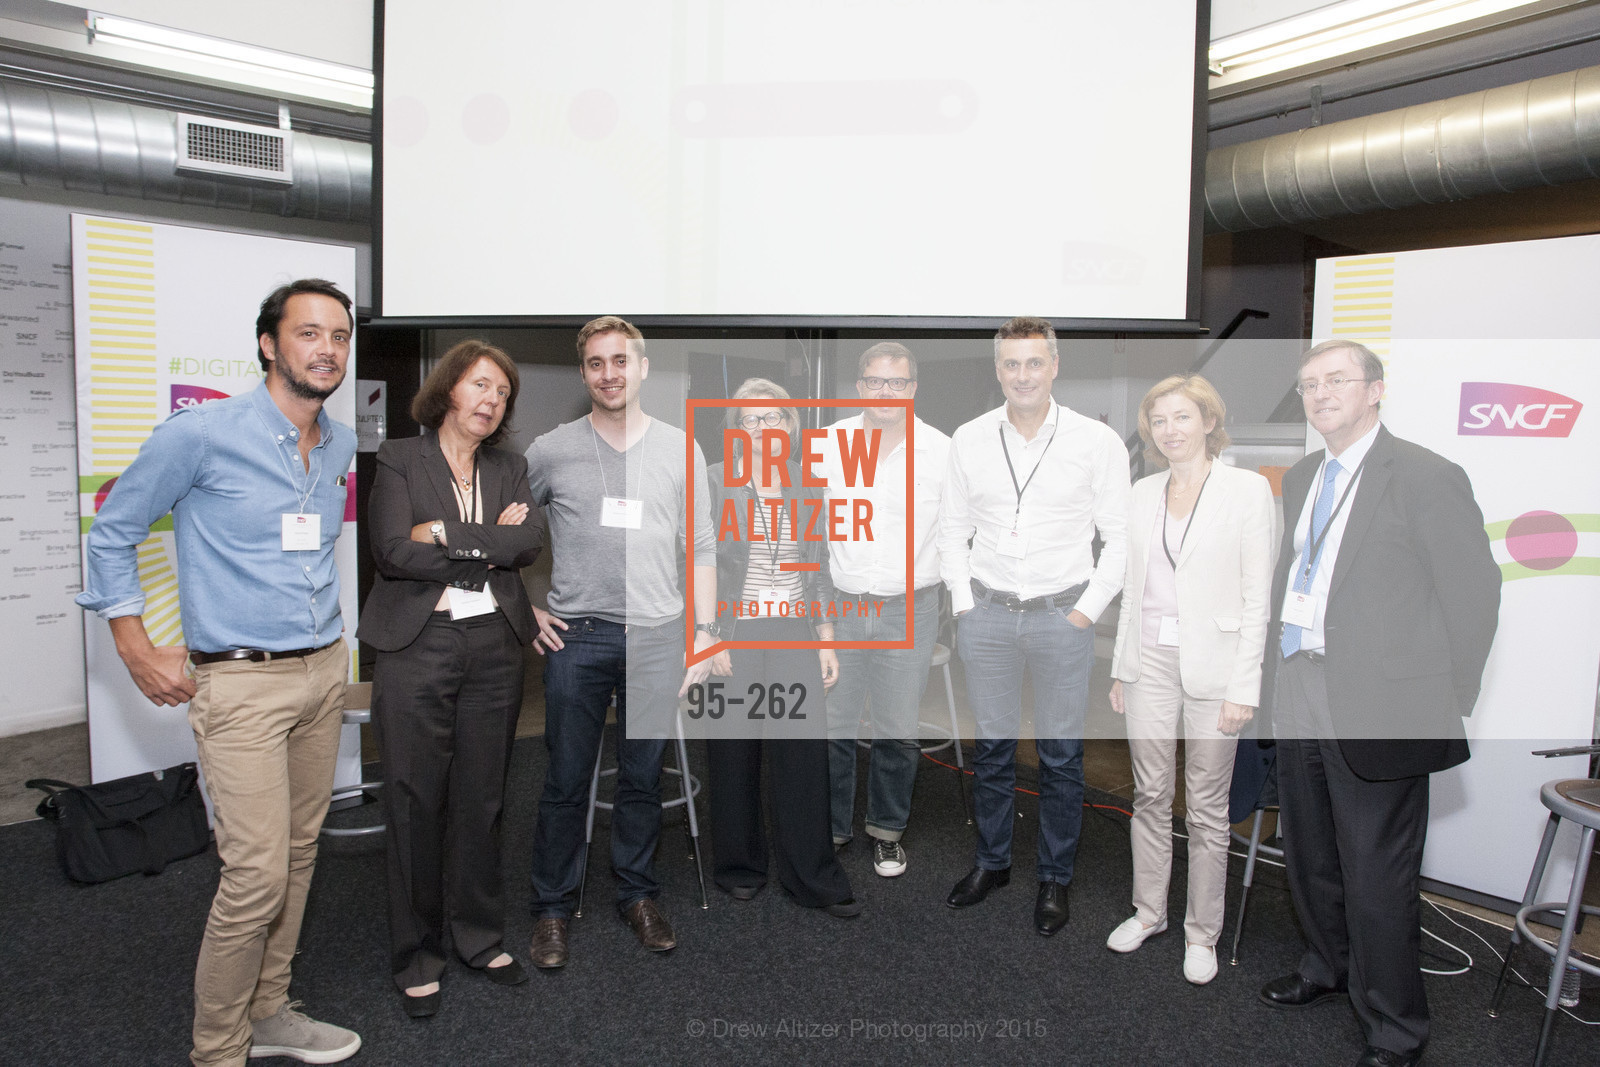 Florent Peyre, Barbara Dalibard, Baptiste Manson, Benedicte Tilloy, Gregory Renard, Yves Tyrode, Florence Parly, Pierre Izard, Inauguration of SNCF Innovation Lab, 169 11th St, August 26th, 2015,Drew Altizer, Drew Altizer Photography, full-service agency, private events, San Francisco photographer, photographer california